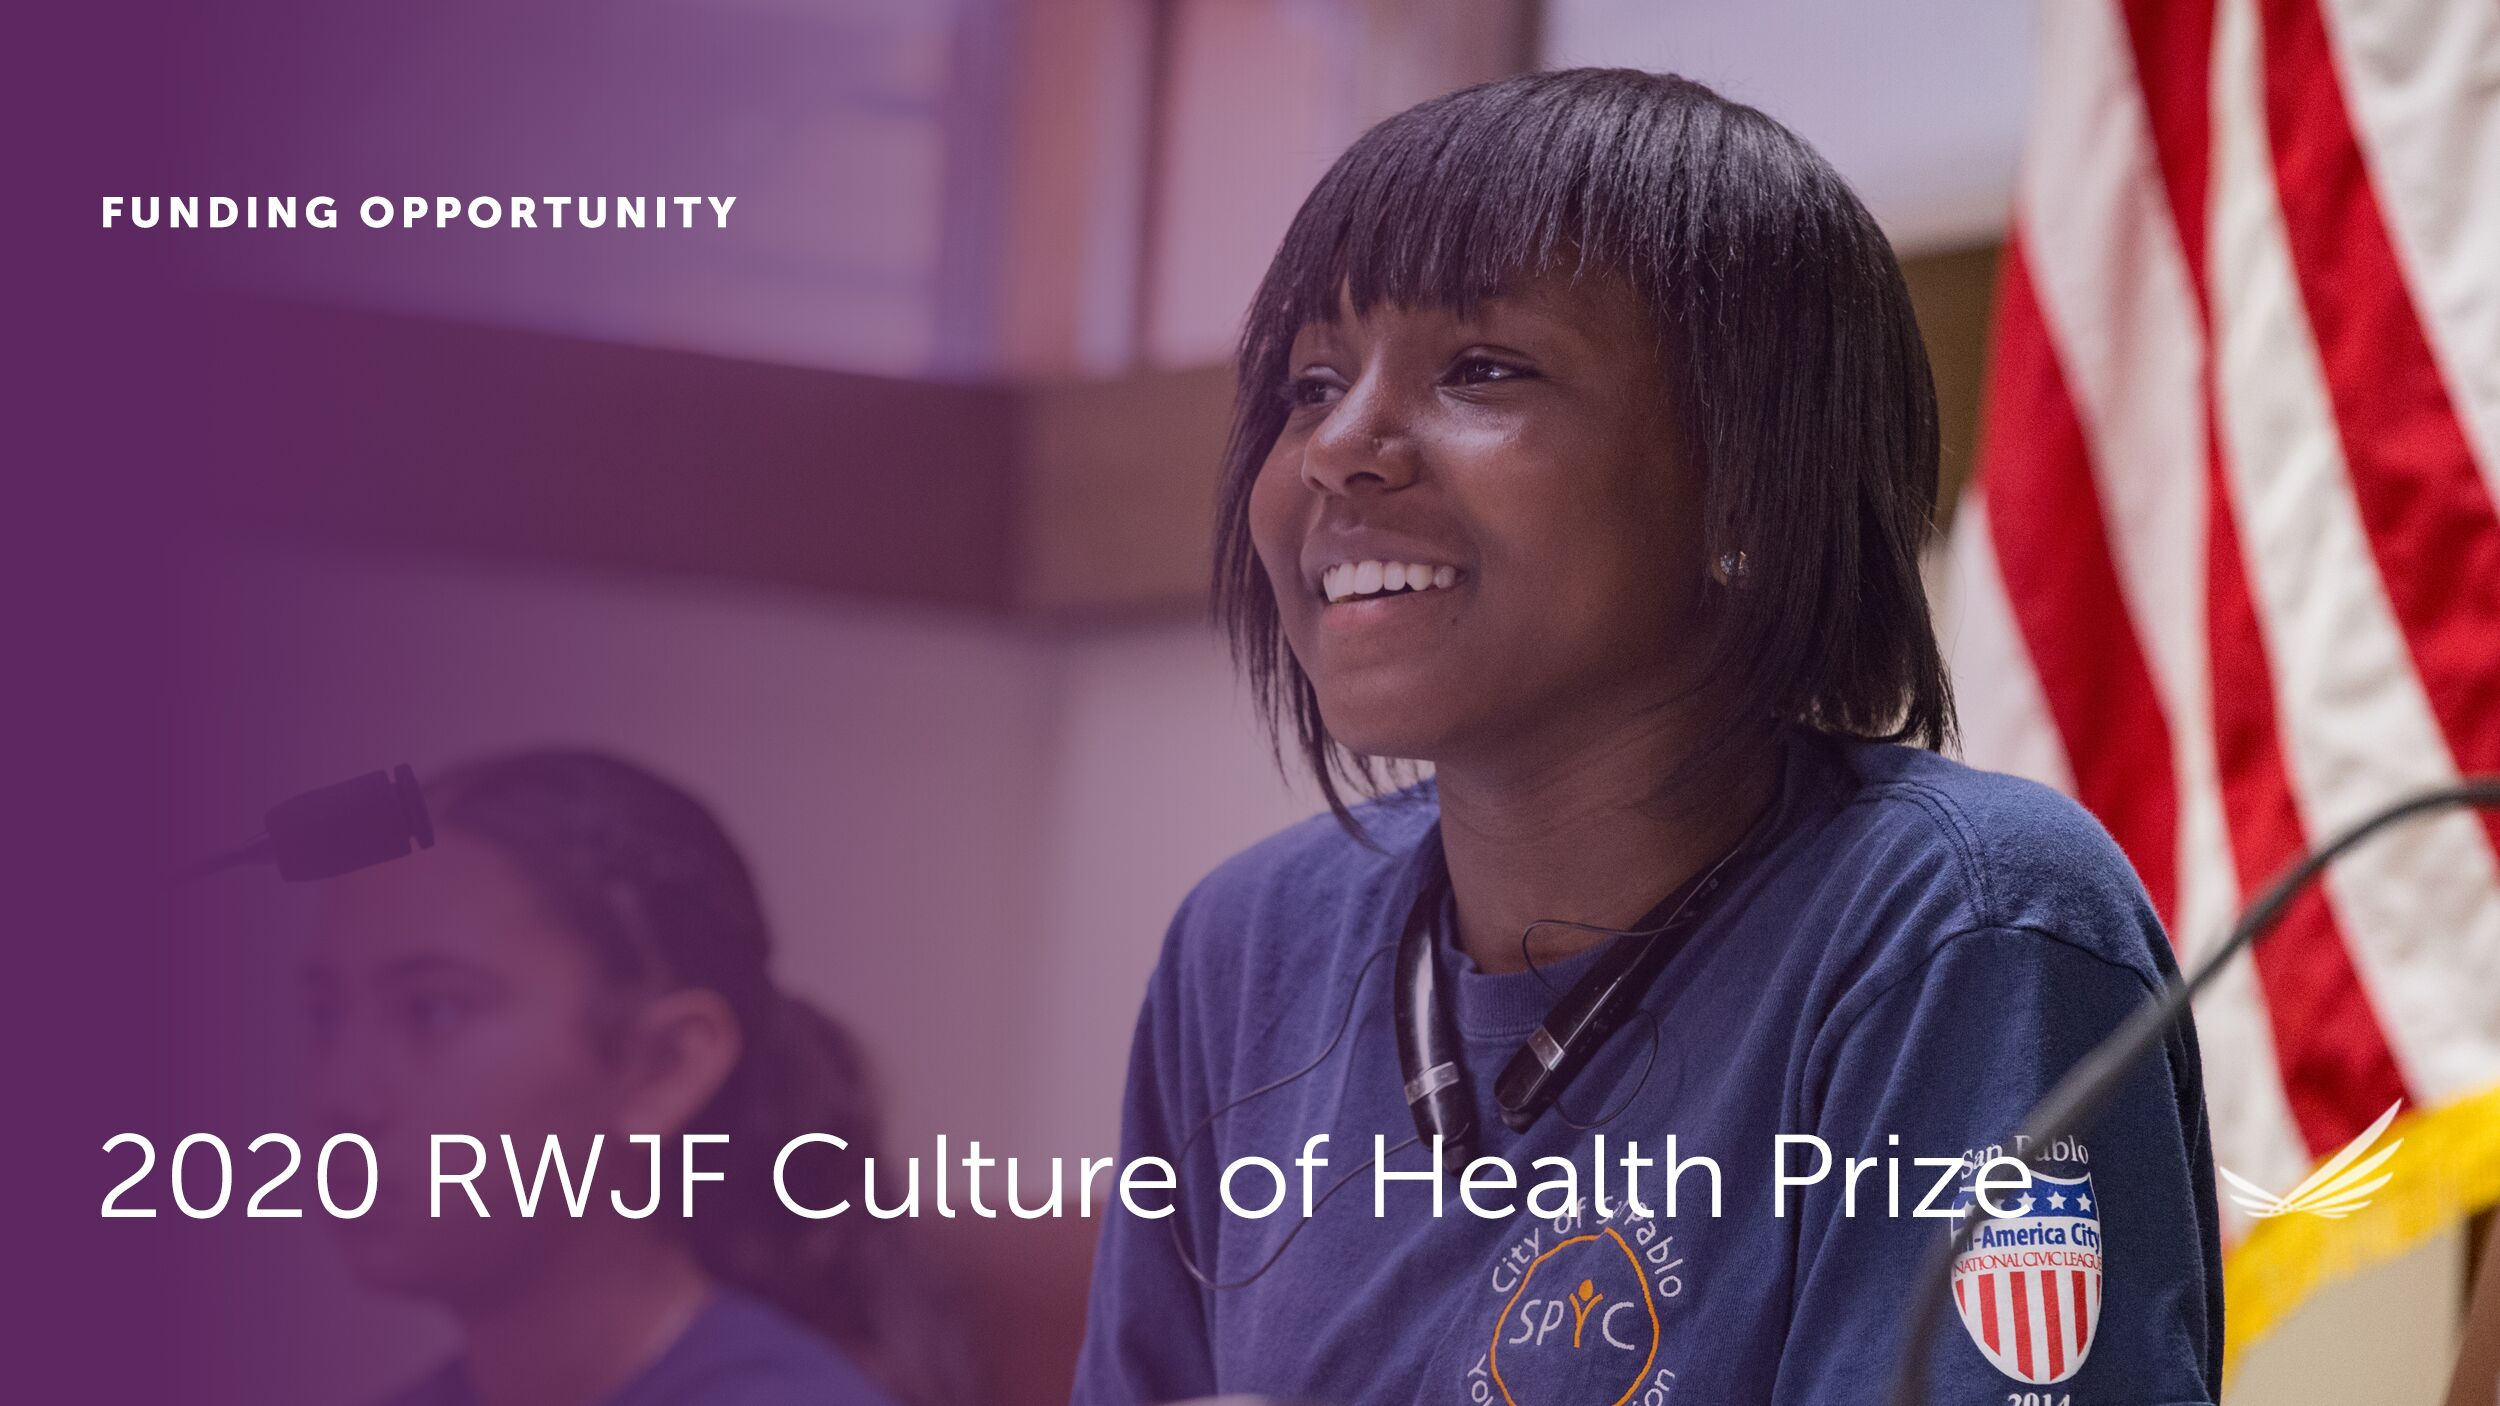 The Robert Wood Johnson Foundation Is Now Accepting Applications for the 2020 Culture of Health Prize